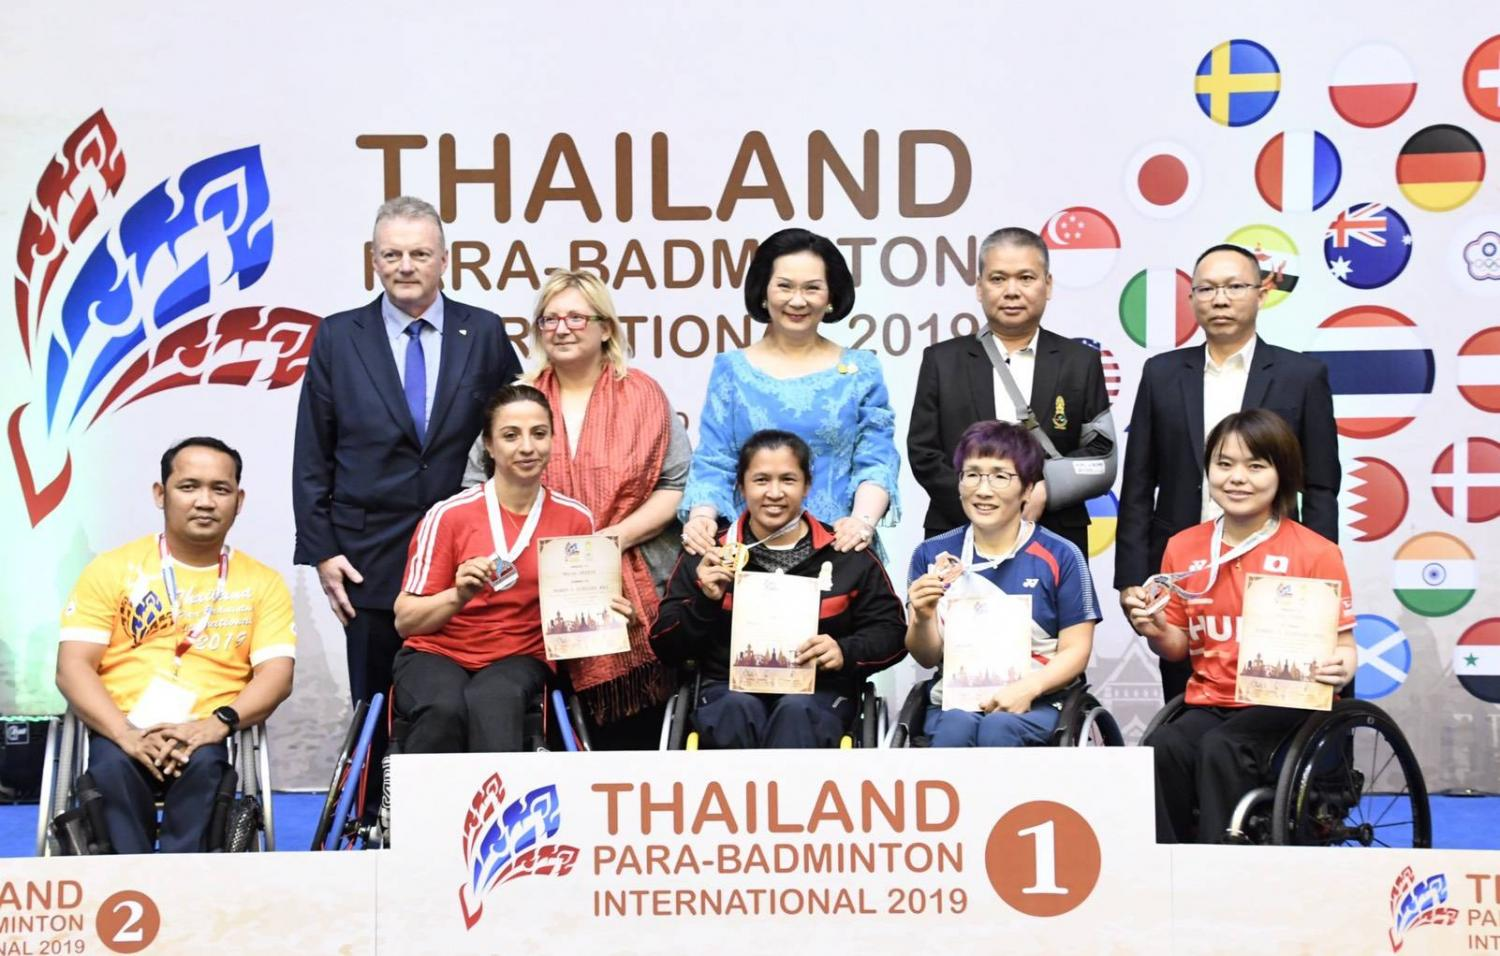 Wheelchair champion Amnouy Wetwithan (centre front) is congratulated by Thai badminton chief Patama Leeswadtrakul, standing behind her.